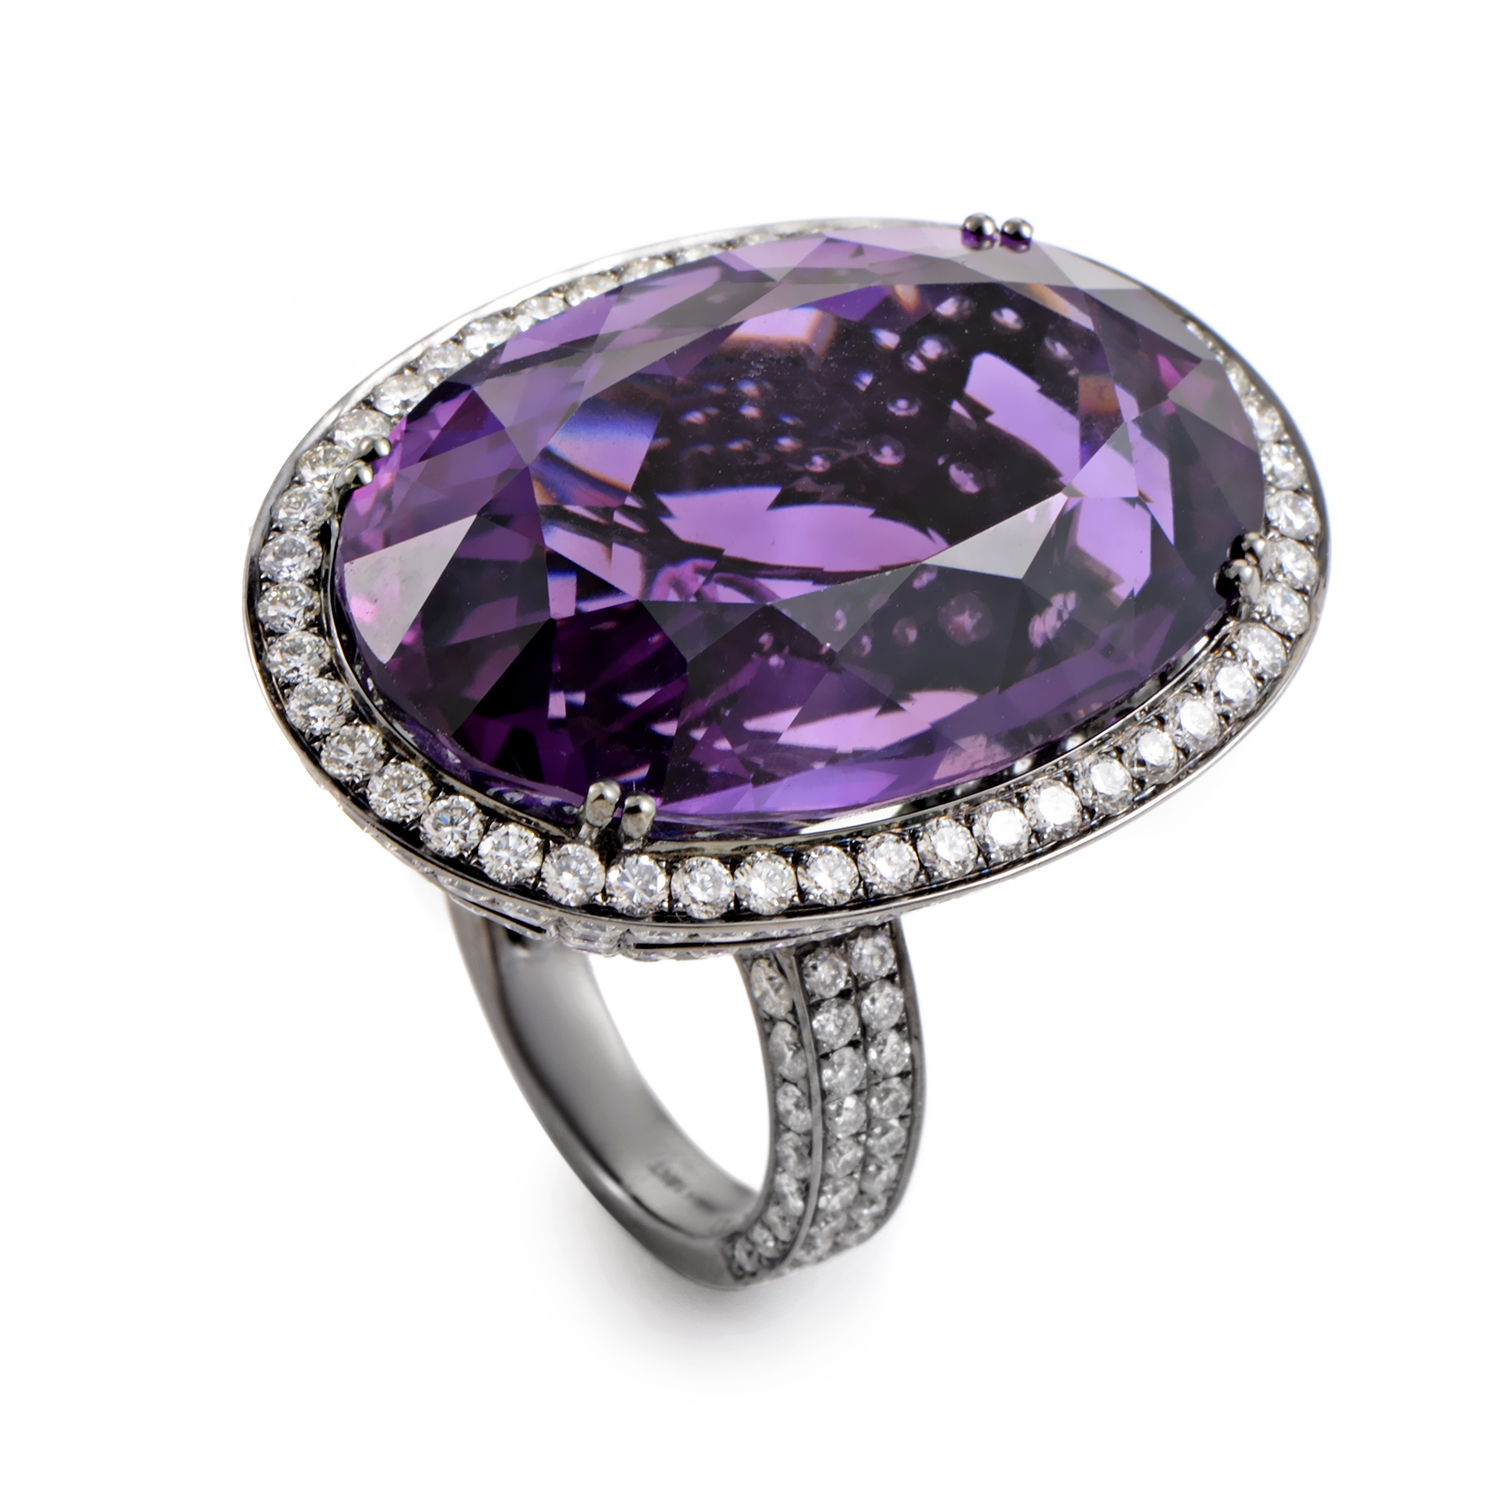 18K White Gold Amethyst & Diamond Cocktail Ring AN68382